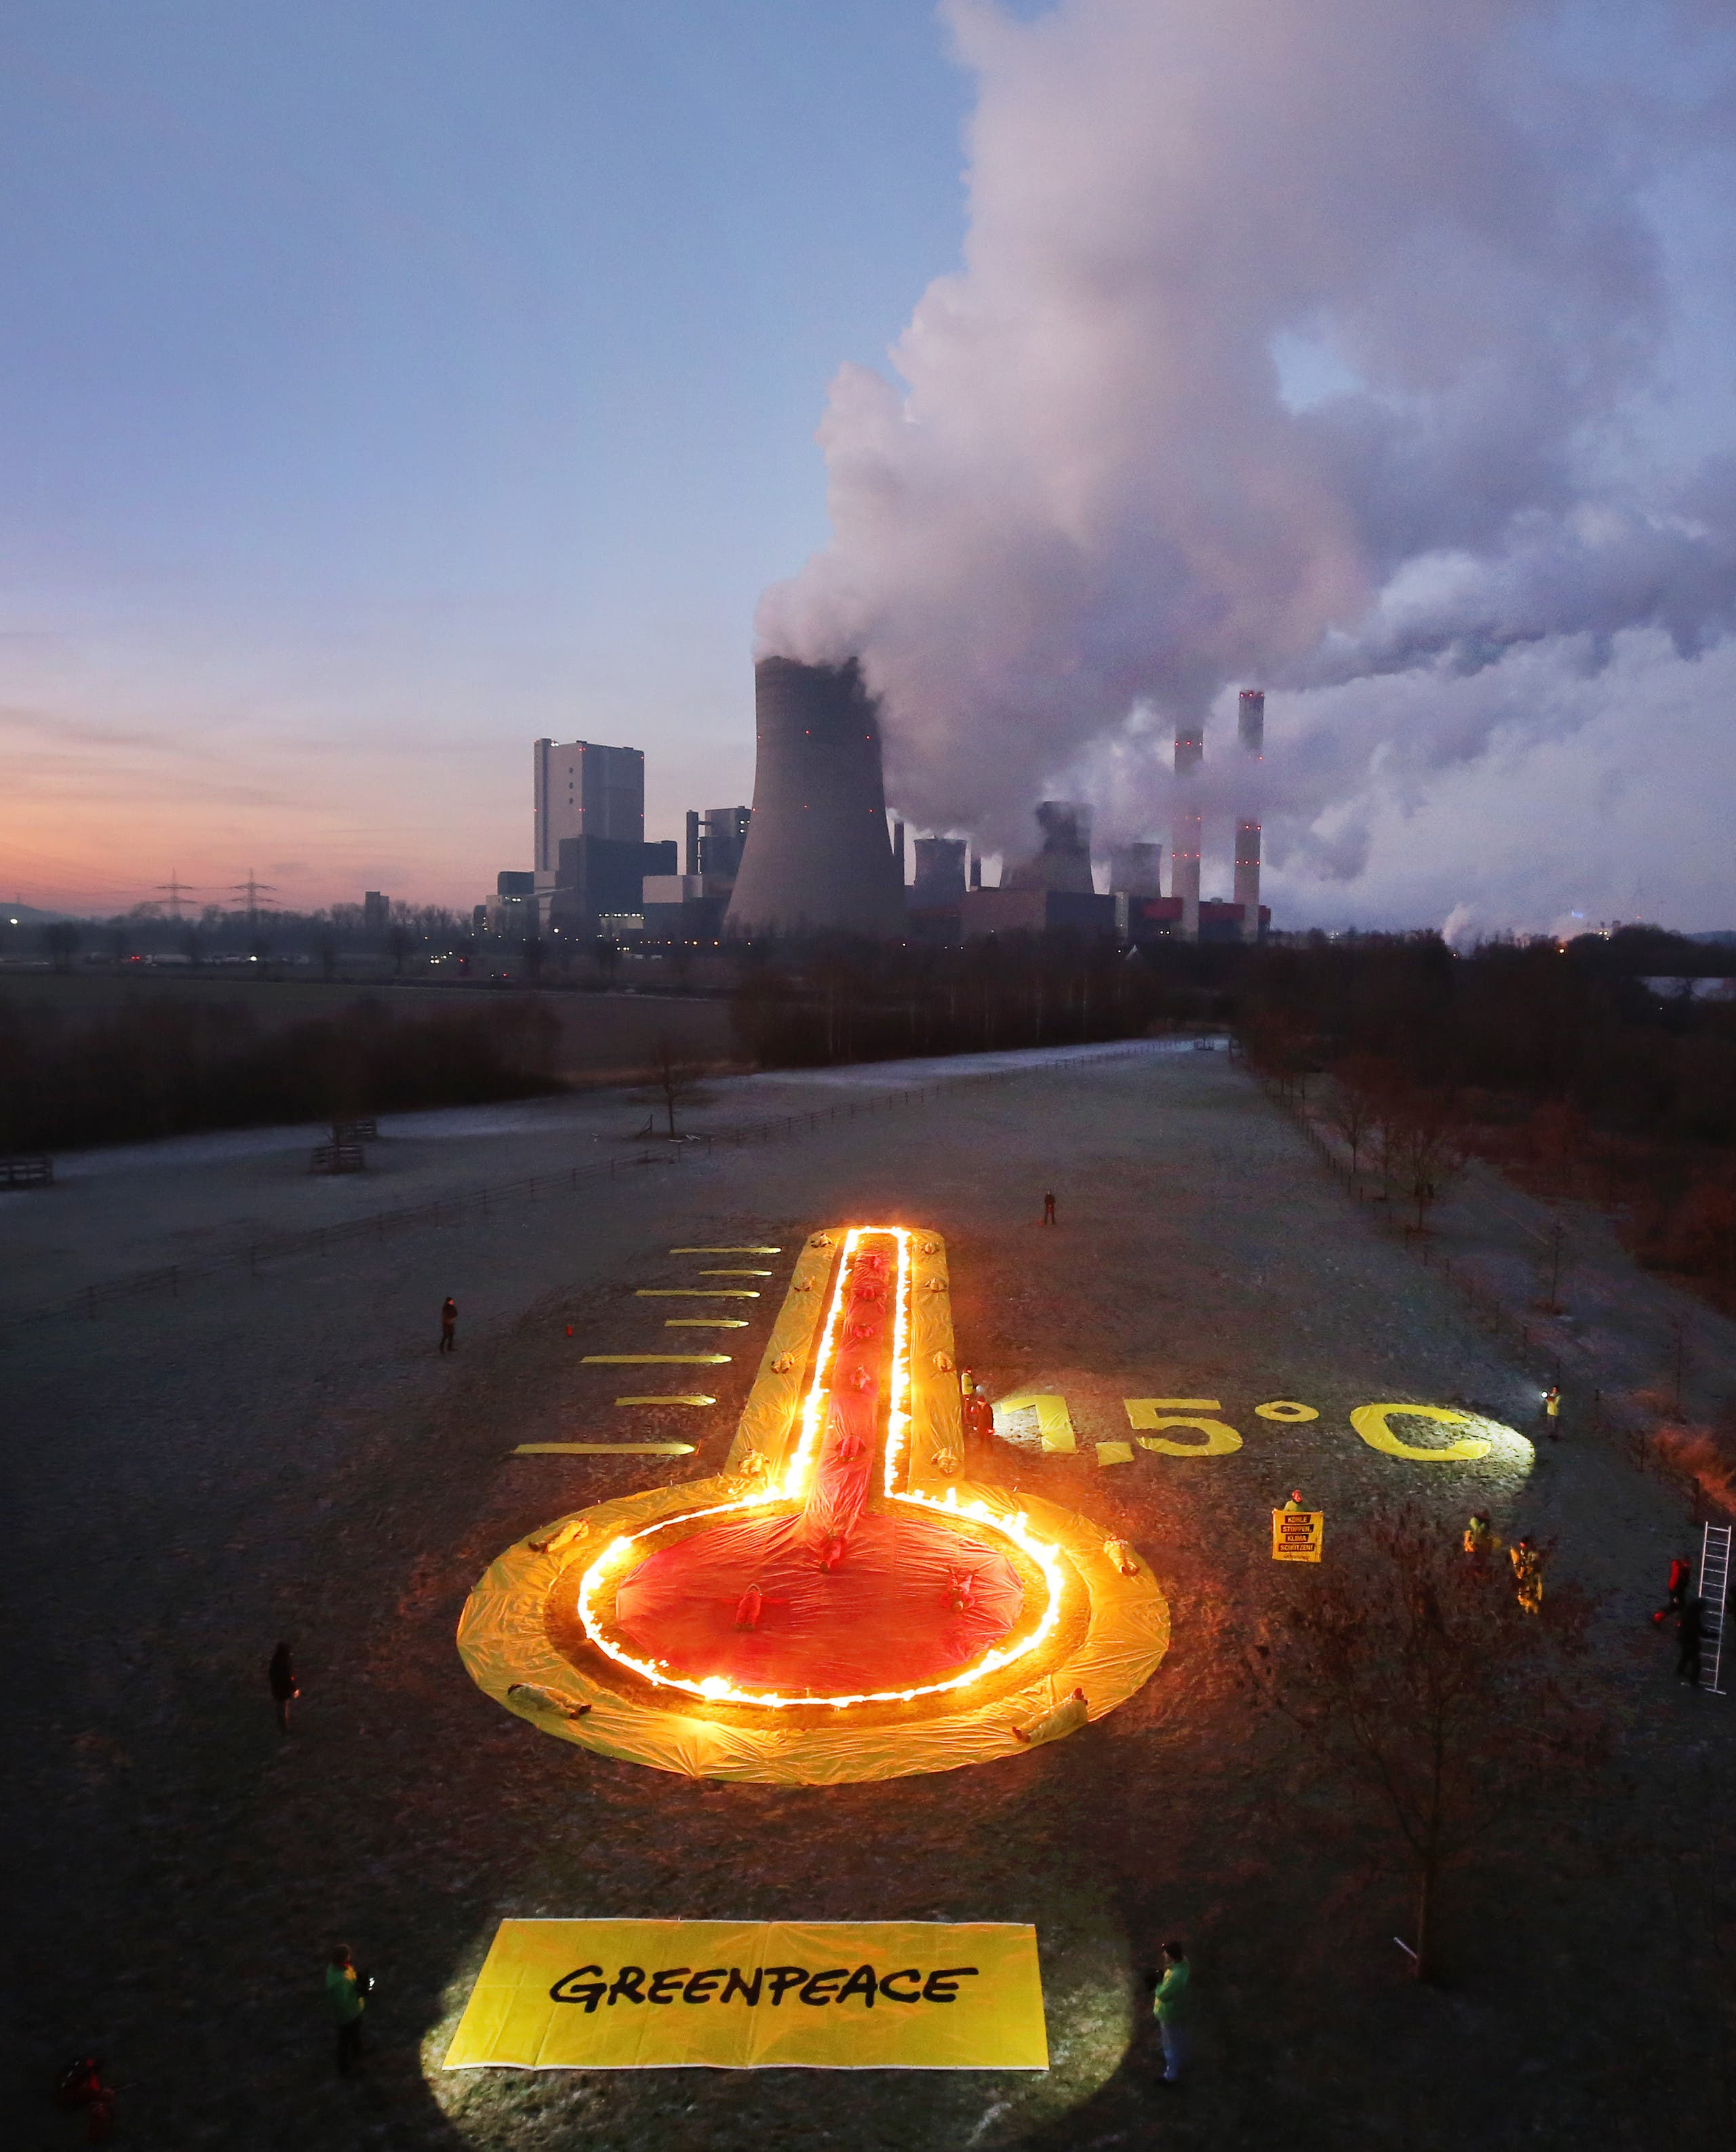 Greenpeace activists have set up an installation depicting a thermometer in front of the Niederaussem lignite-fired power station in Rommerskirchen, western Germany, in a protest on January 22, 2019 against the burning of fossil fuels provoking global warming, asking to limit the rise of global temperatures to 1,5 degrees Celsius.